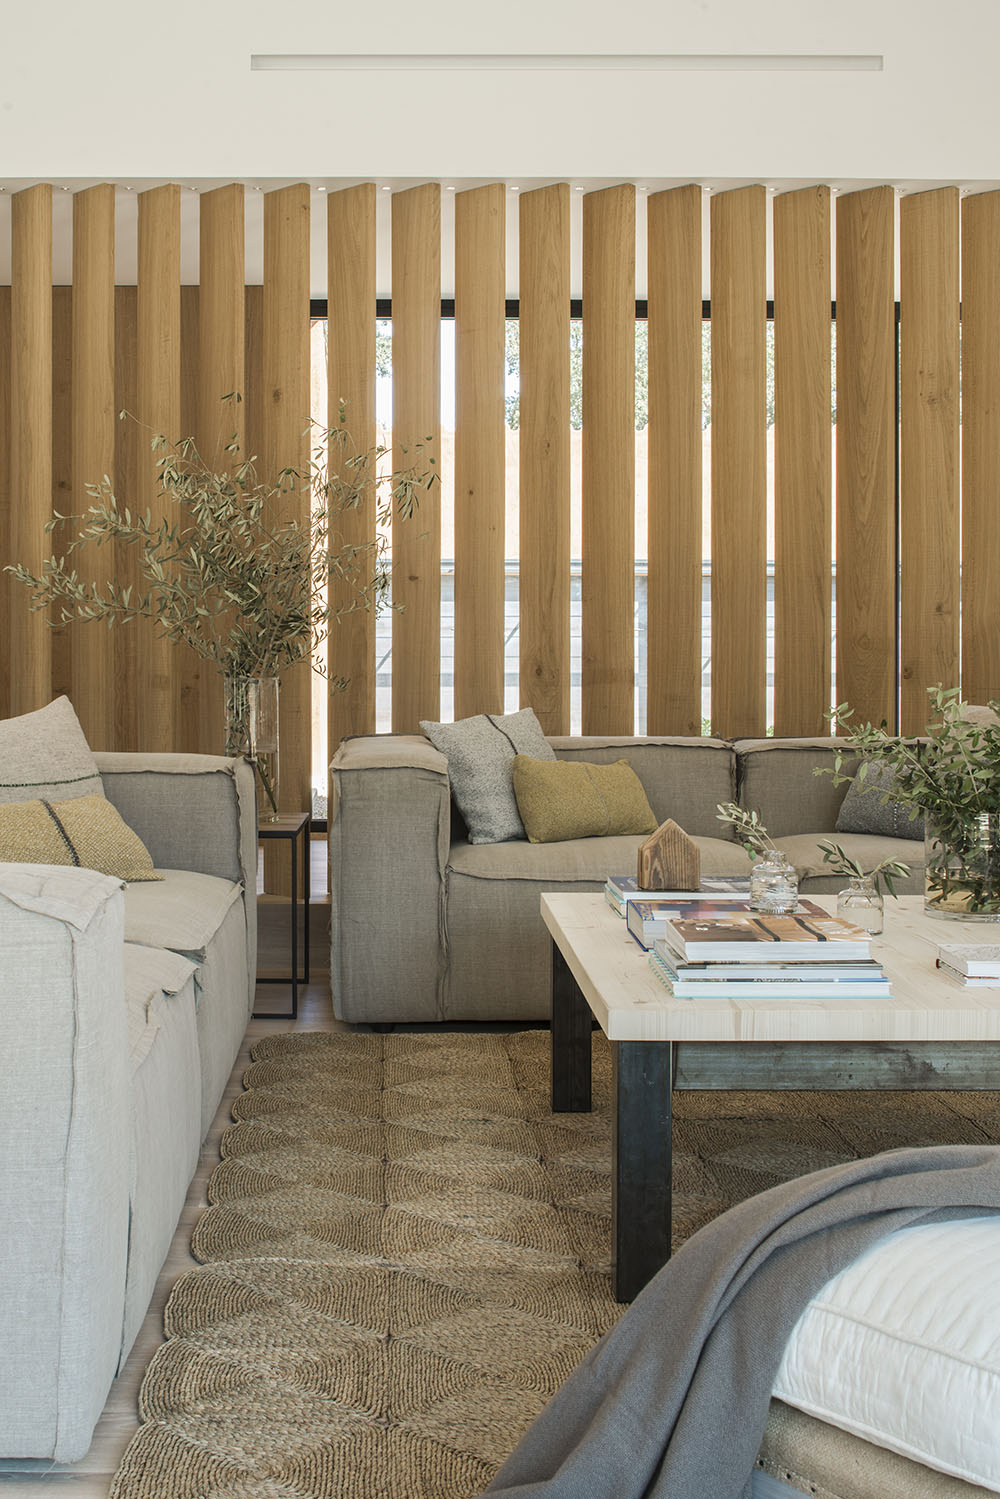 A slatted wall behind the sofa brings additional light into the space.